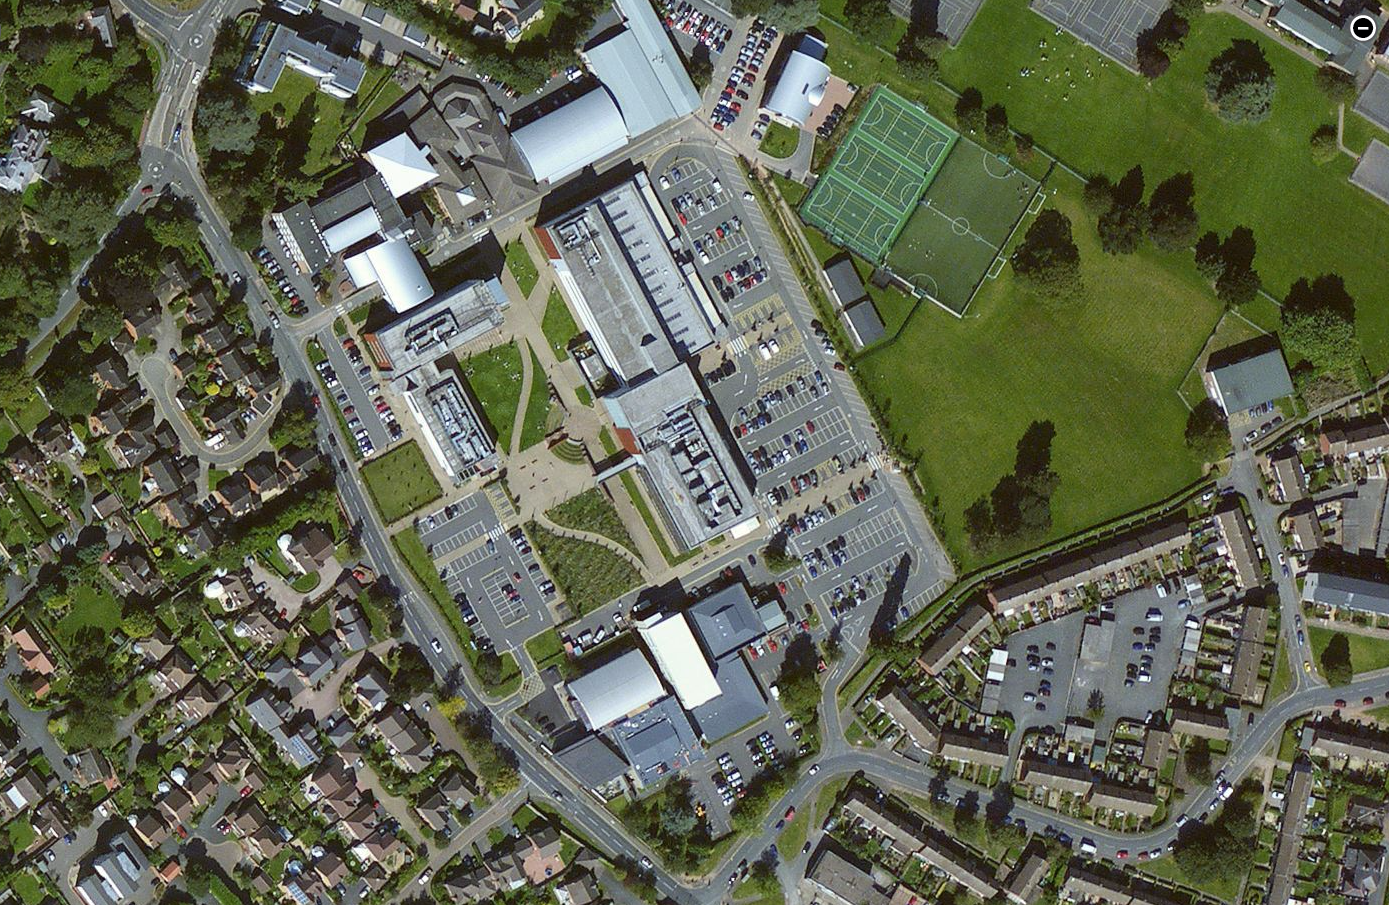 Hereford Learning Village Masterplan HCT HLC HSFC HCA